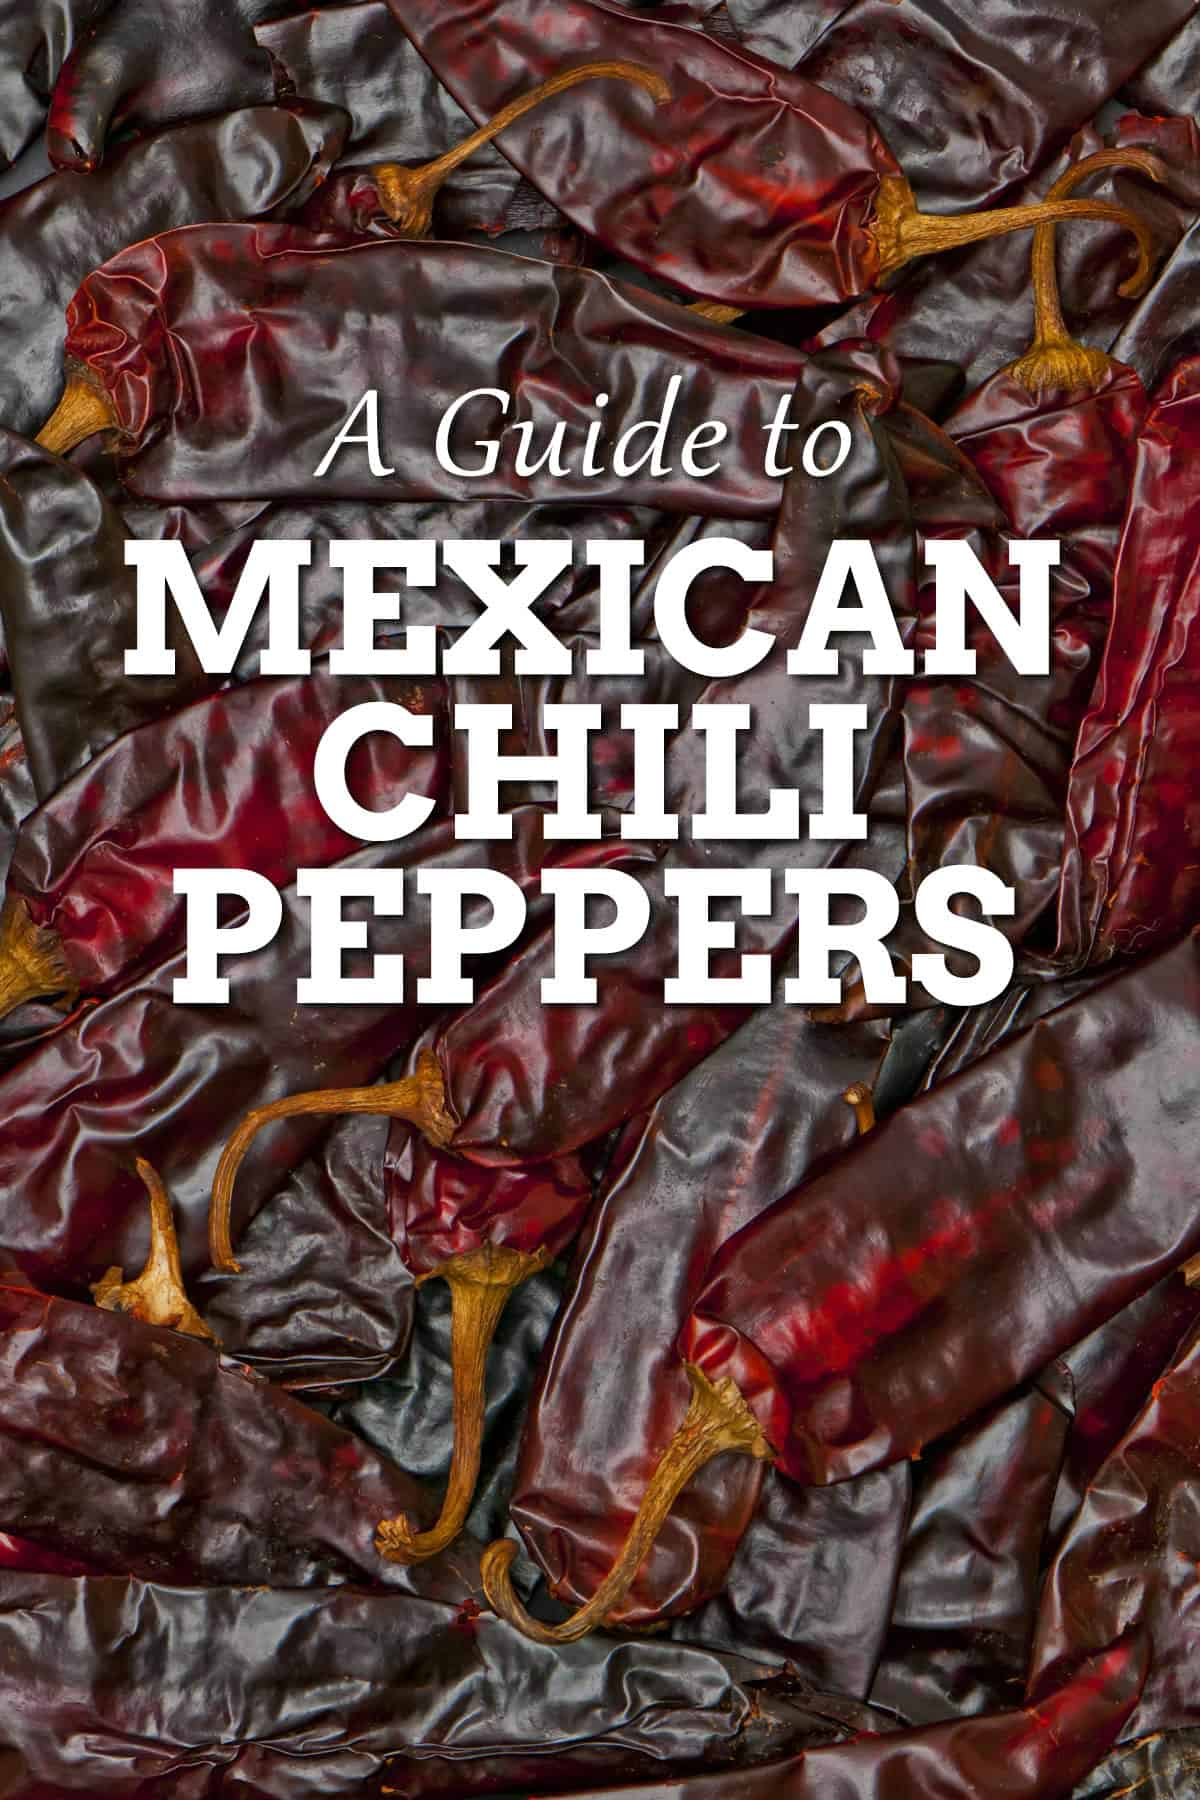 A Guide to Mexican Chili Peppers